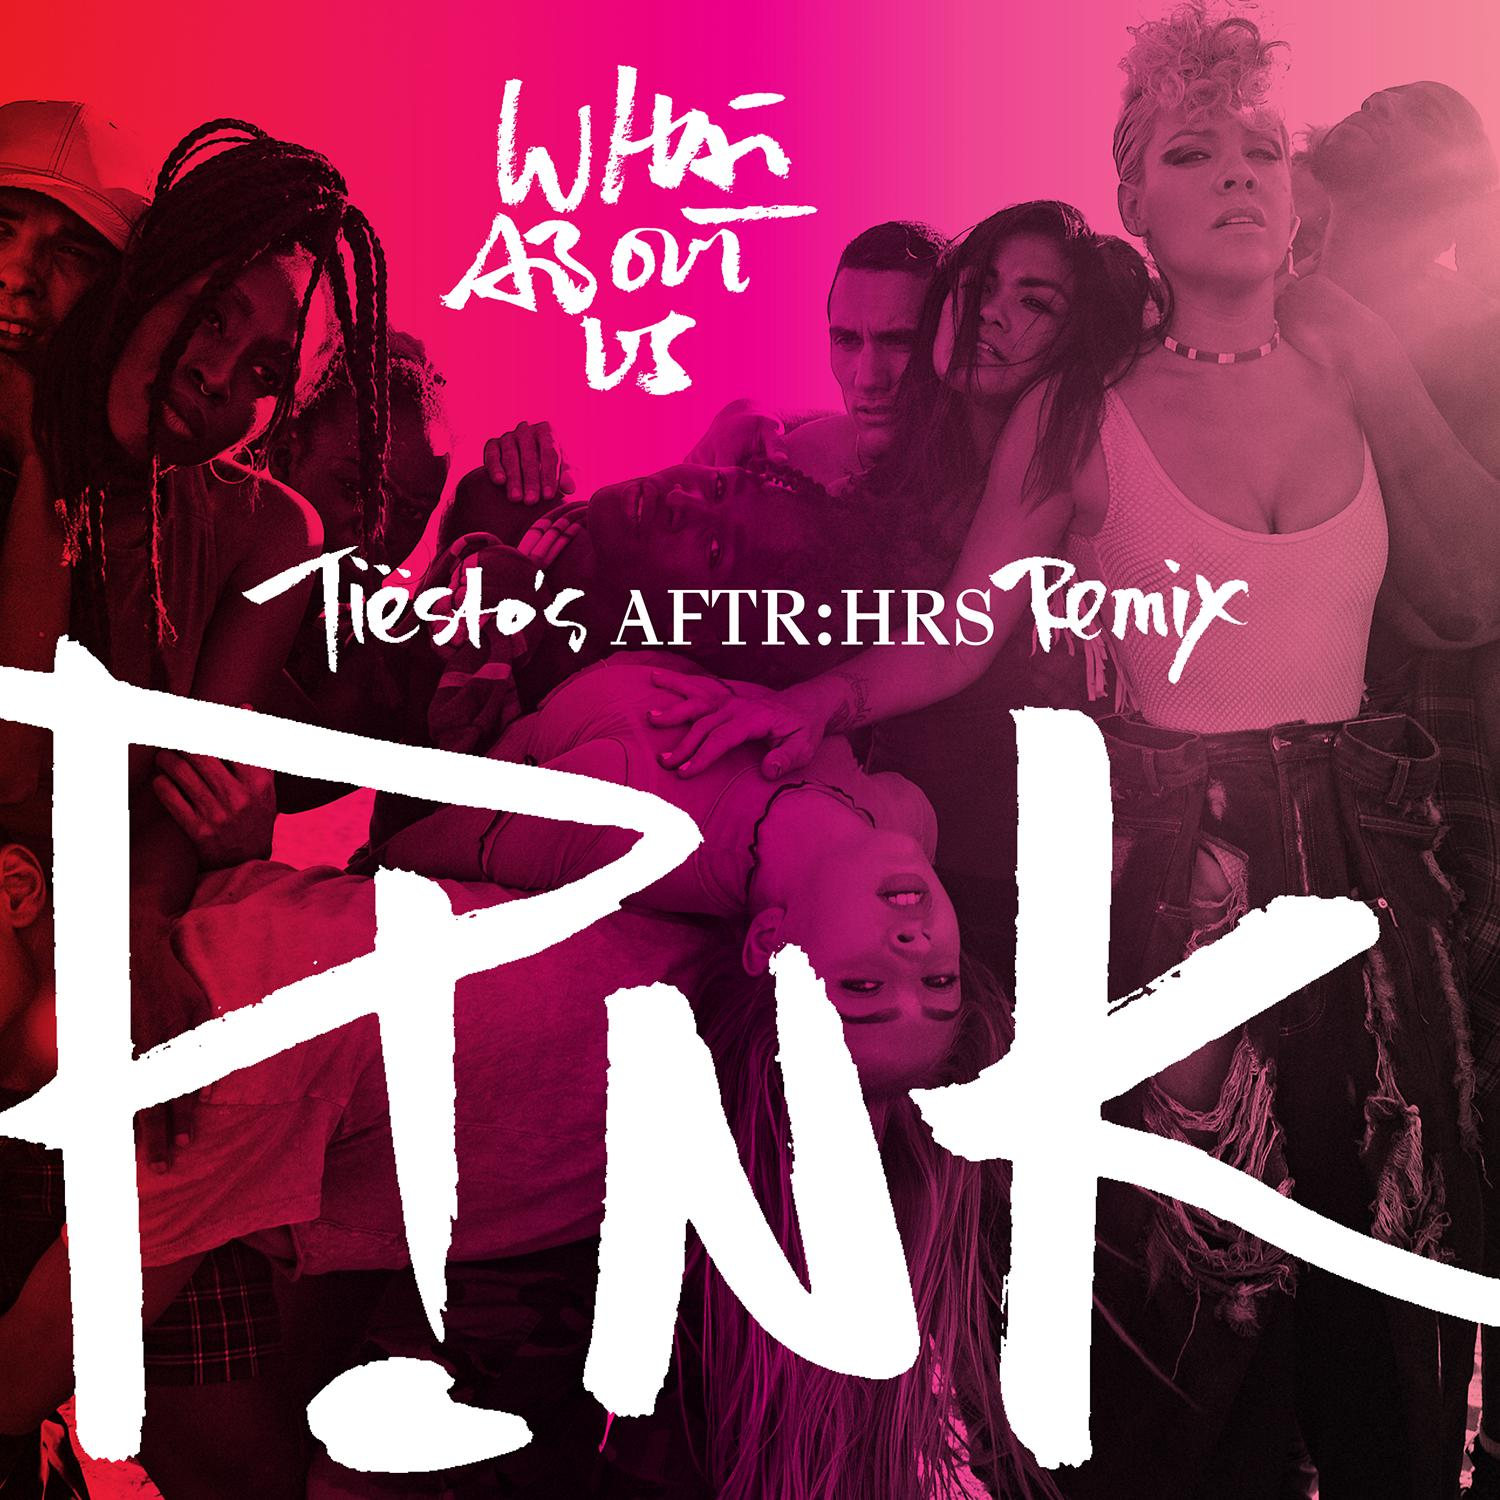 P!NK - WHAT ABOUT US (TIESTOS AFTR HRS REMIX)